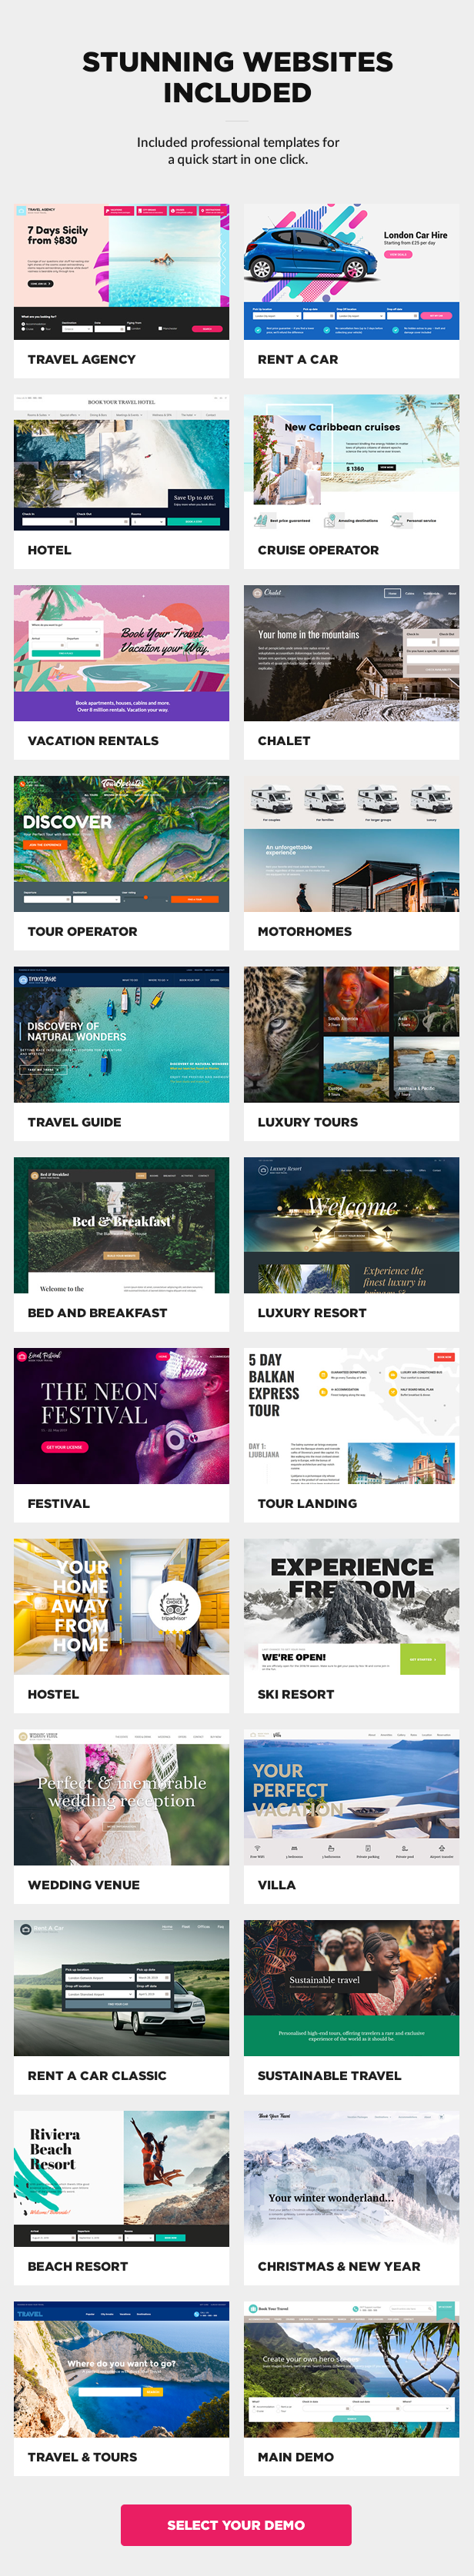 demo websites included2 - Book Your Travel - Online Booking WordPress Theme